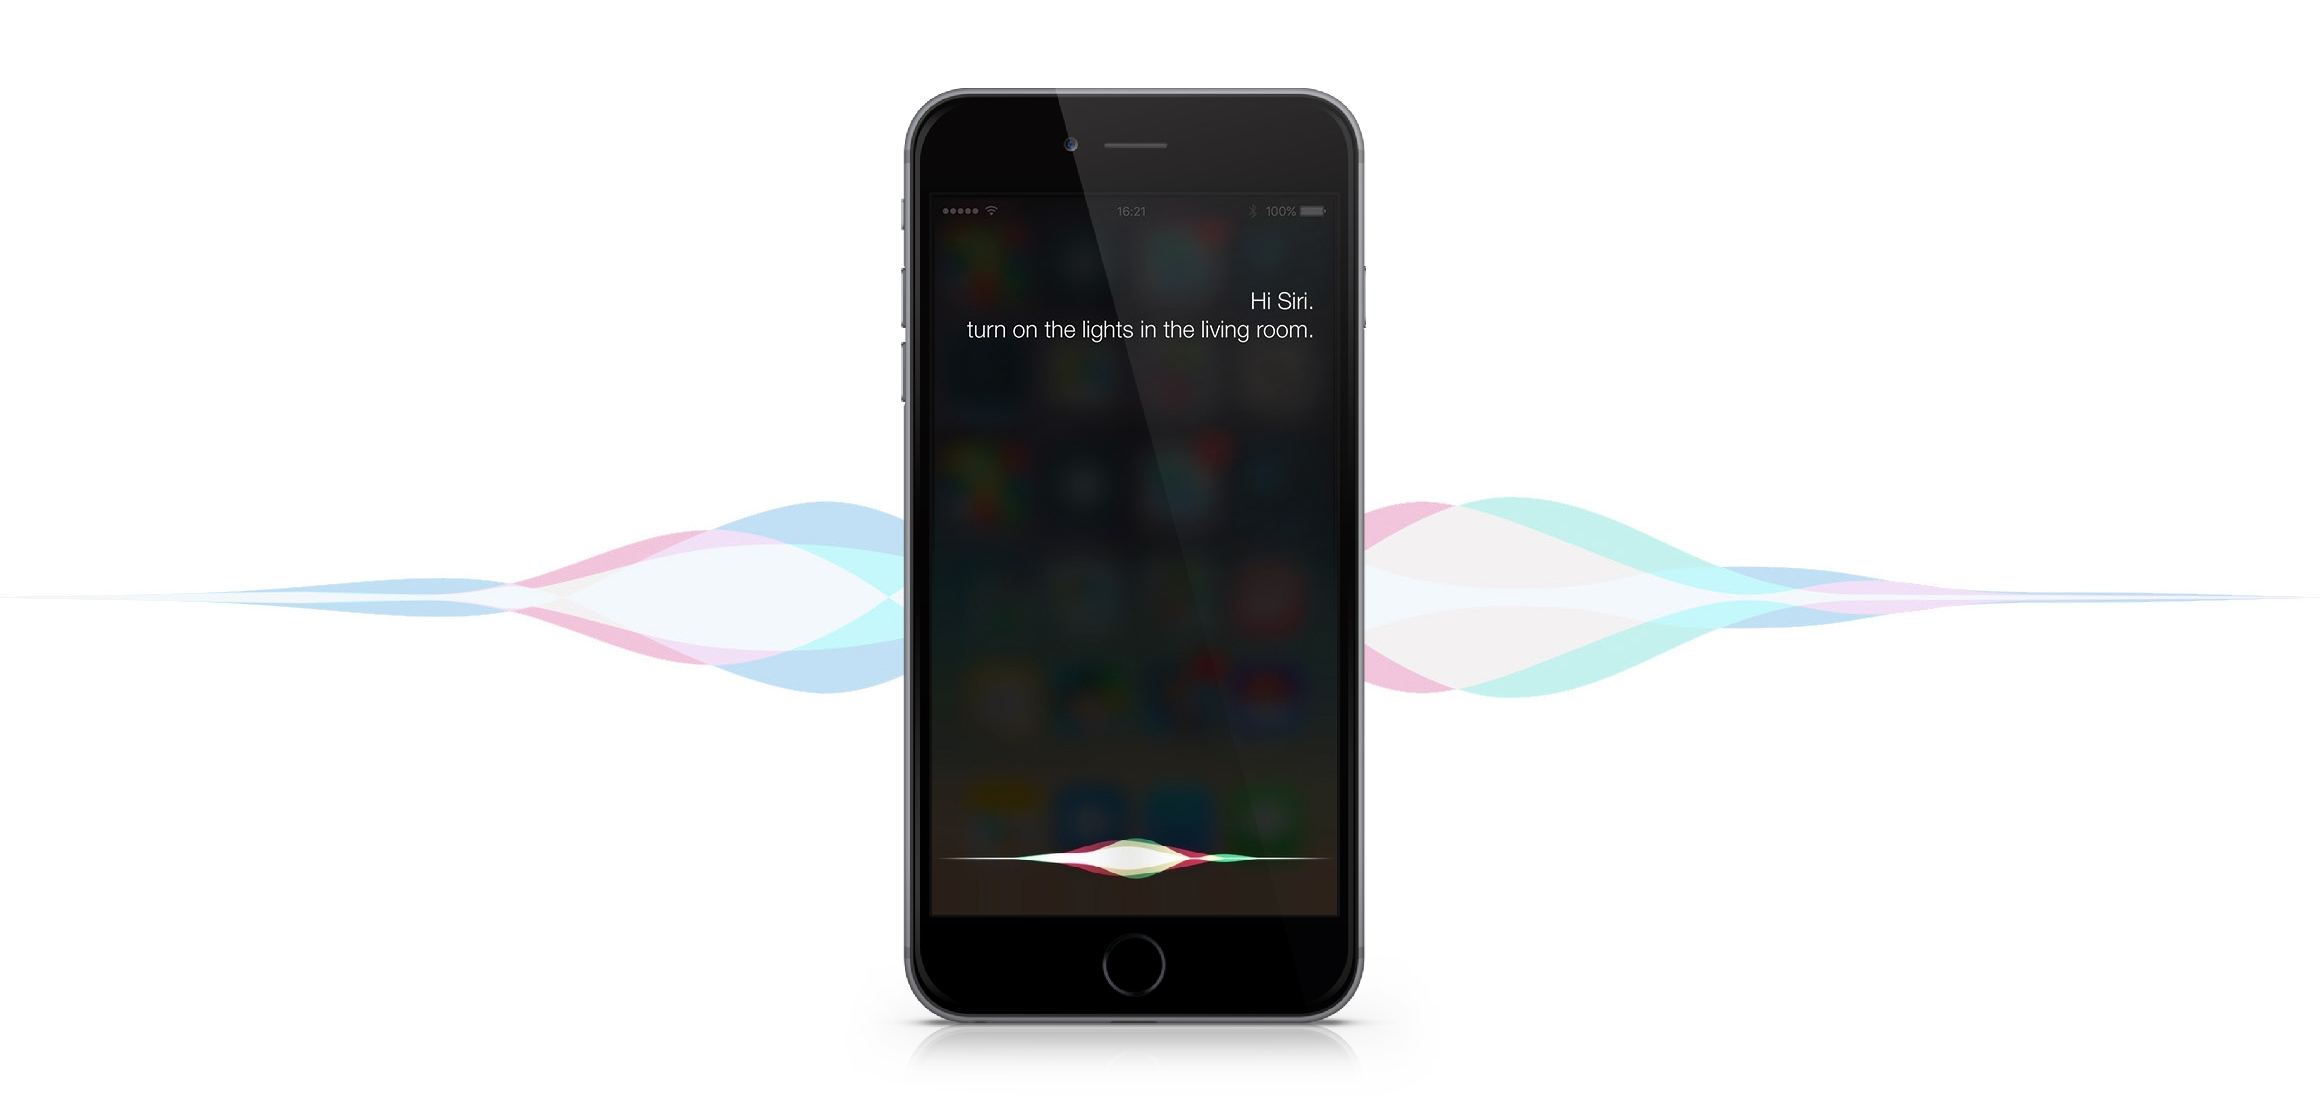 Compatible with Siri